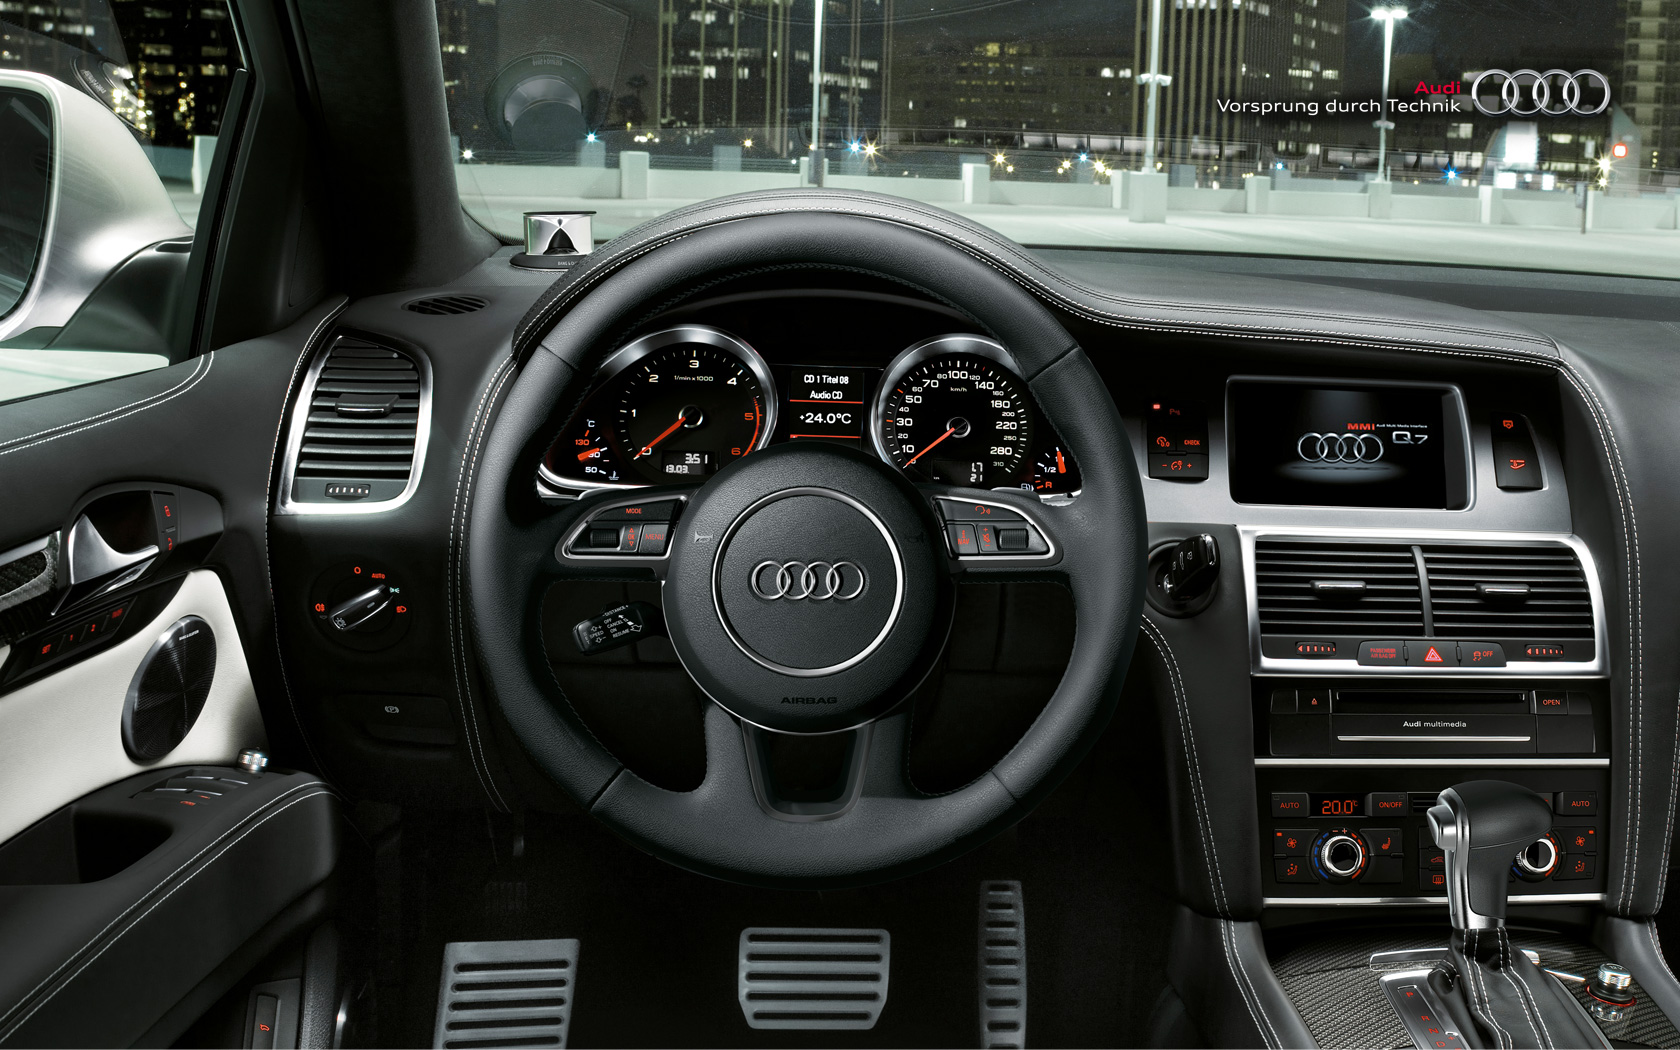 Has Anyone Seen The Cedar Brown Interior Page 2 Audiworld Forums